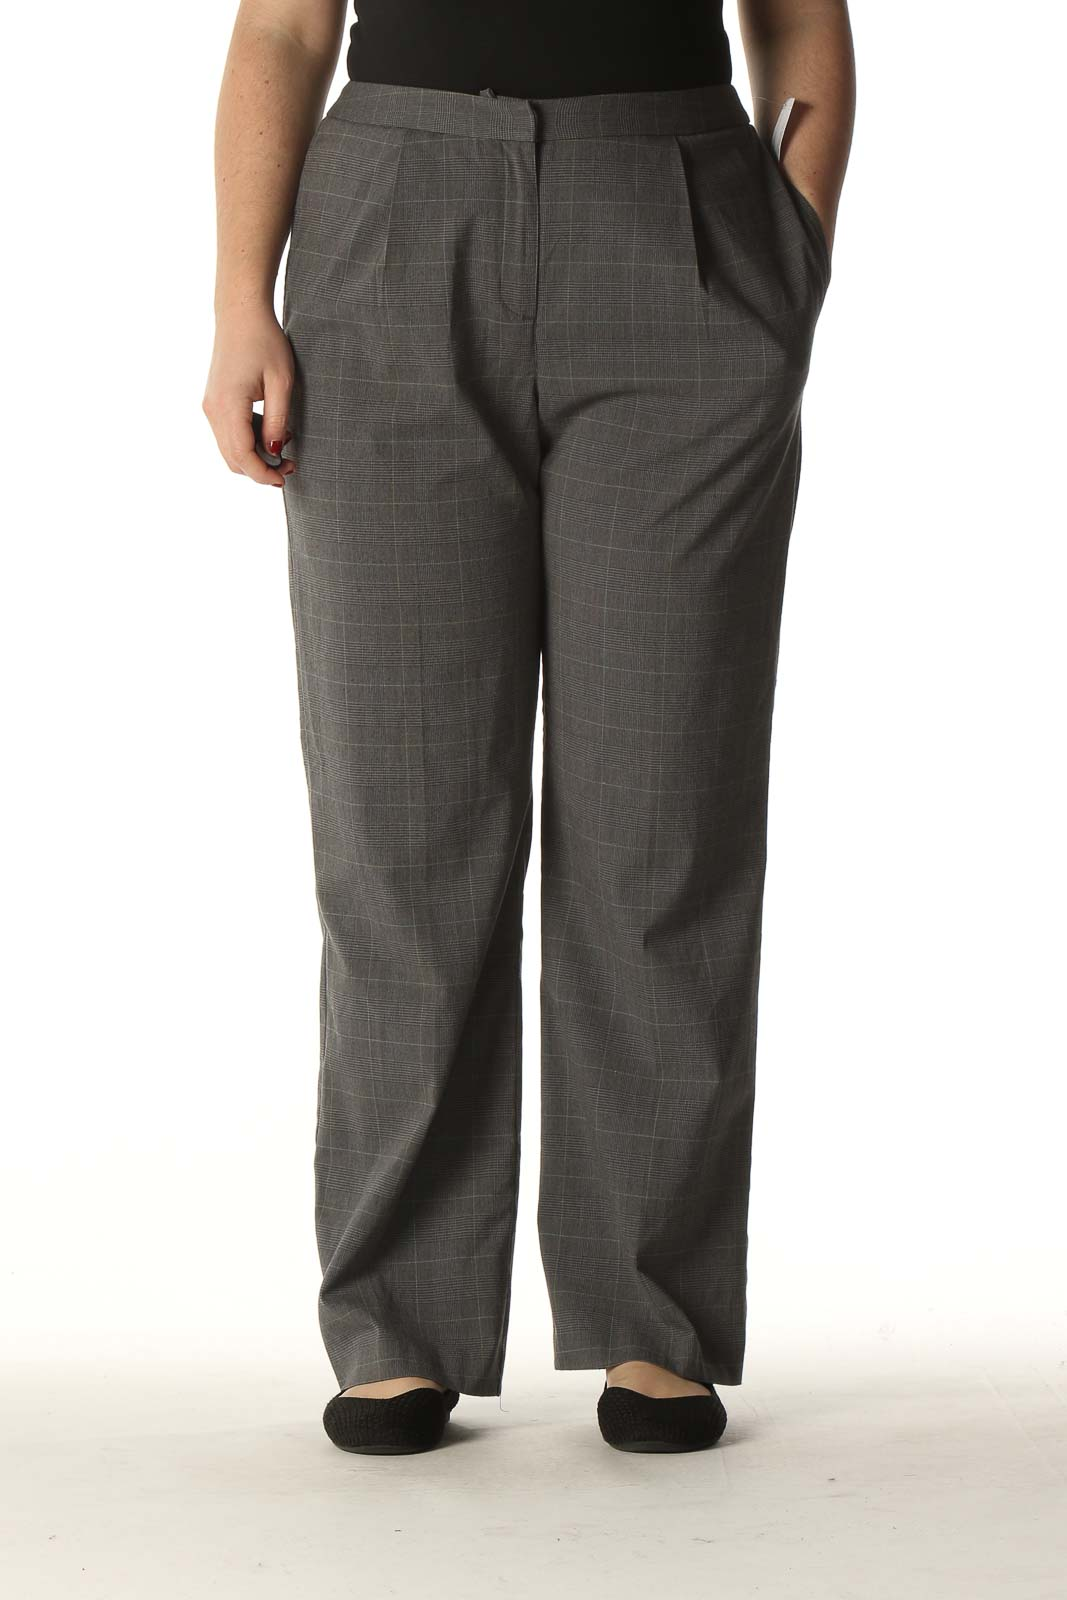 Gray Checkered Classic Slacks Front